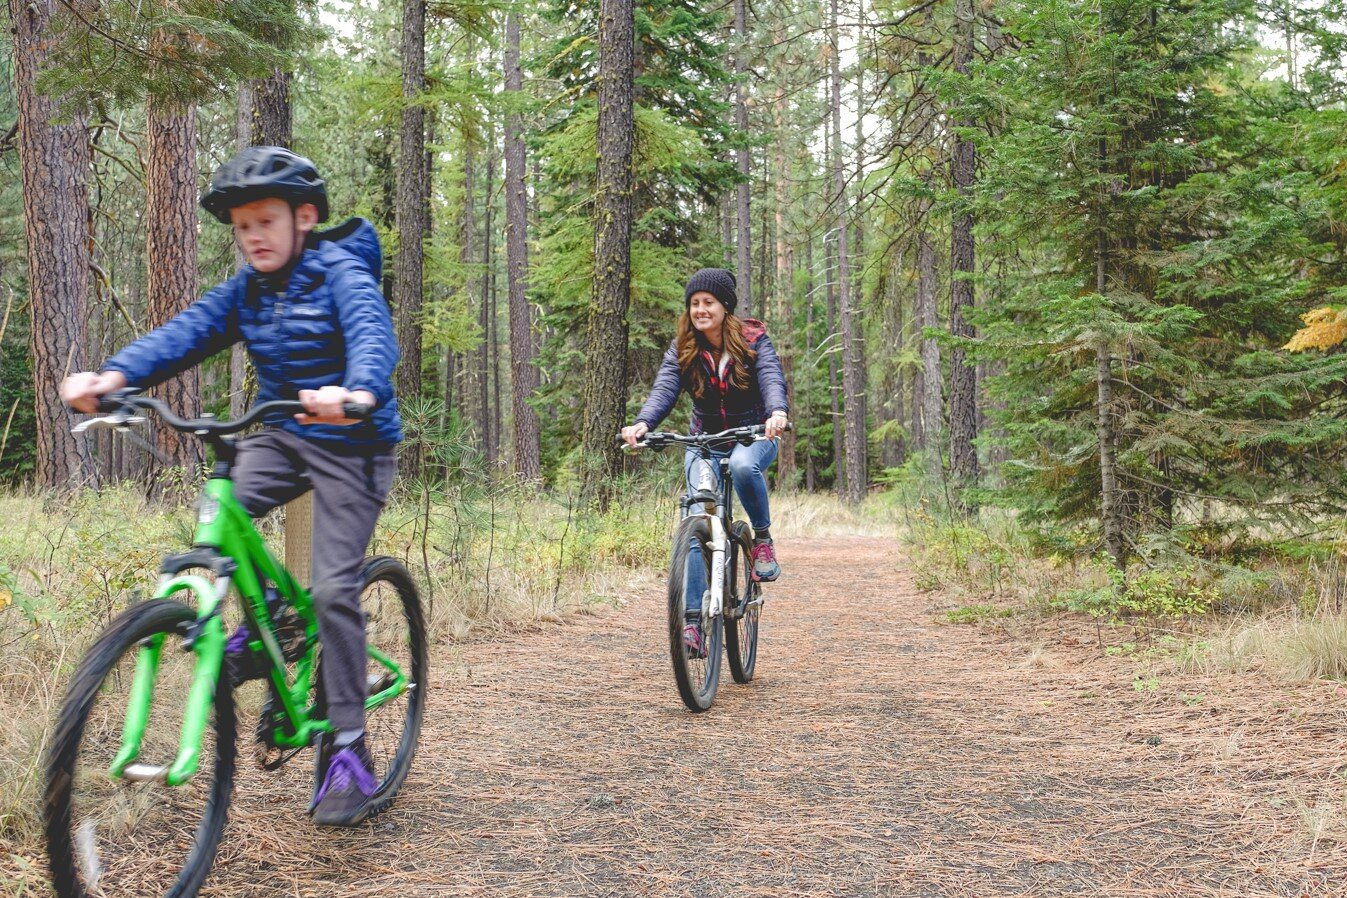 Mom and son hit the best mountain biking trails just outside of Cold Springs Resort in Camp Sherman Oregon